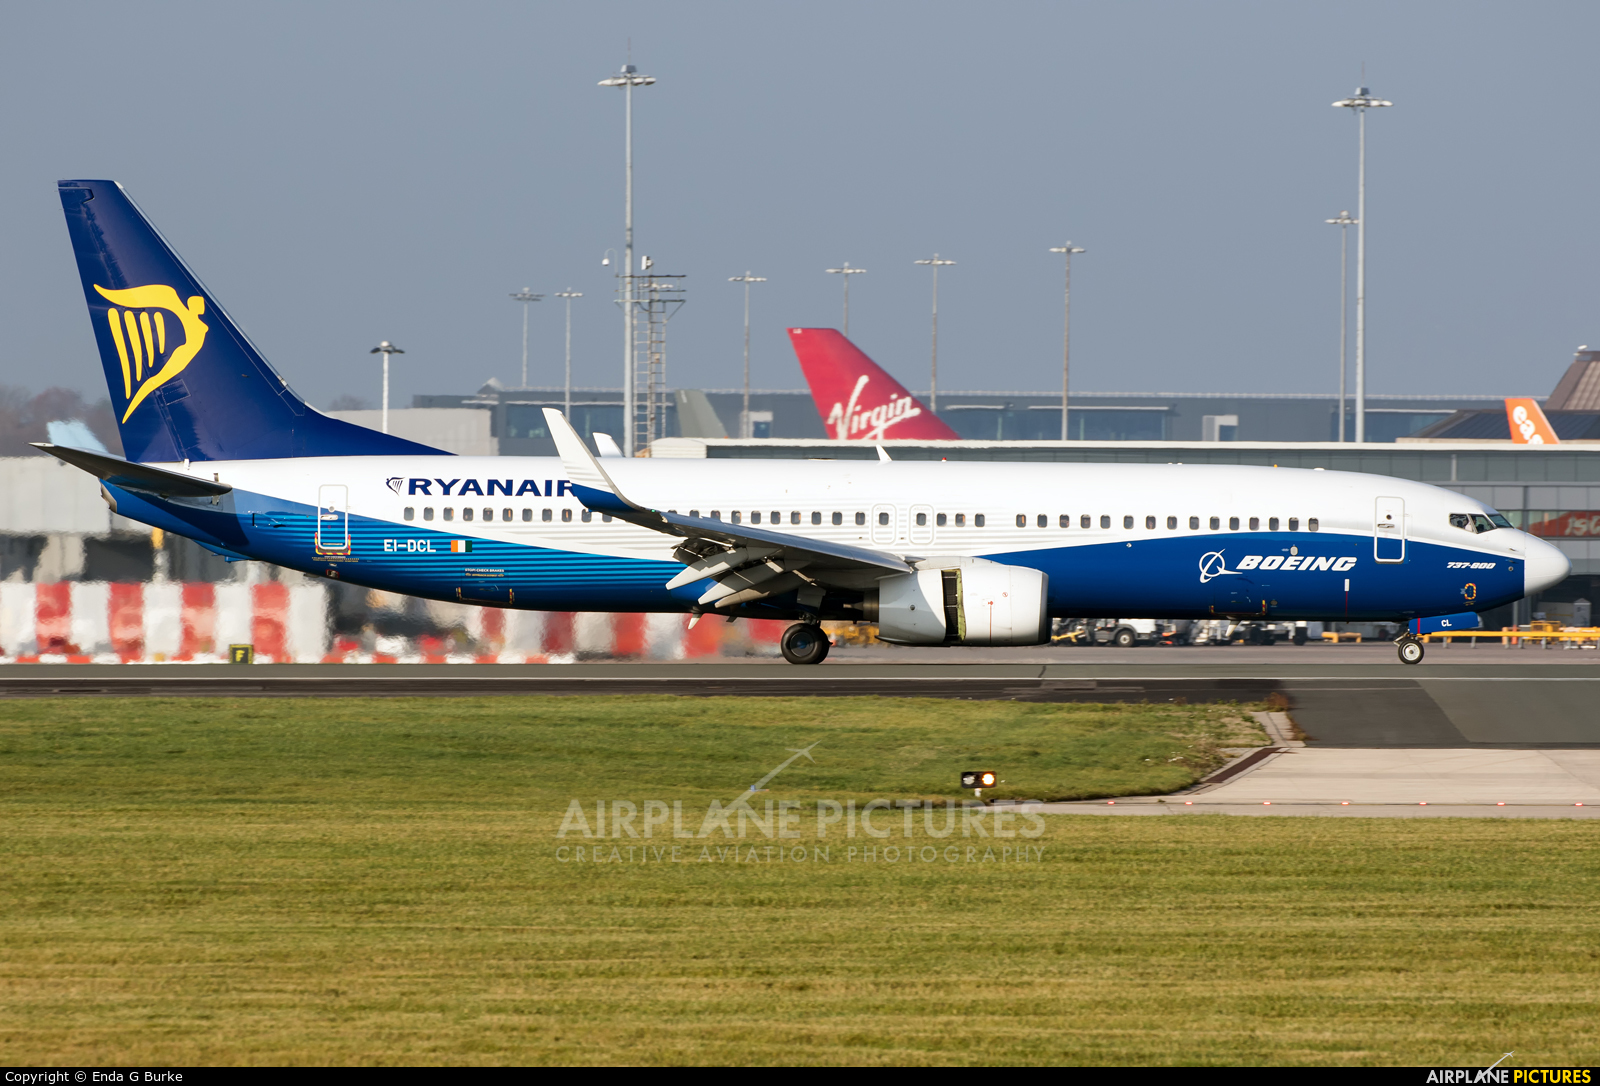 Ryanair EI-DCL aircraft at Manchester